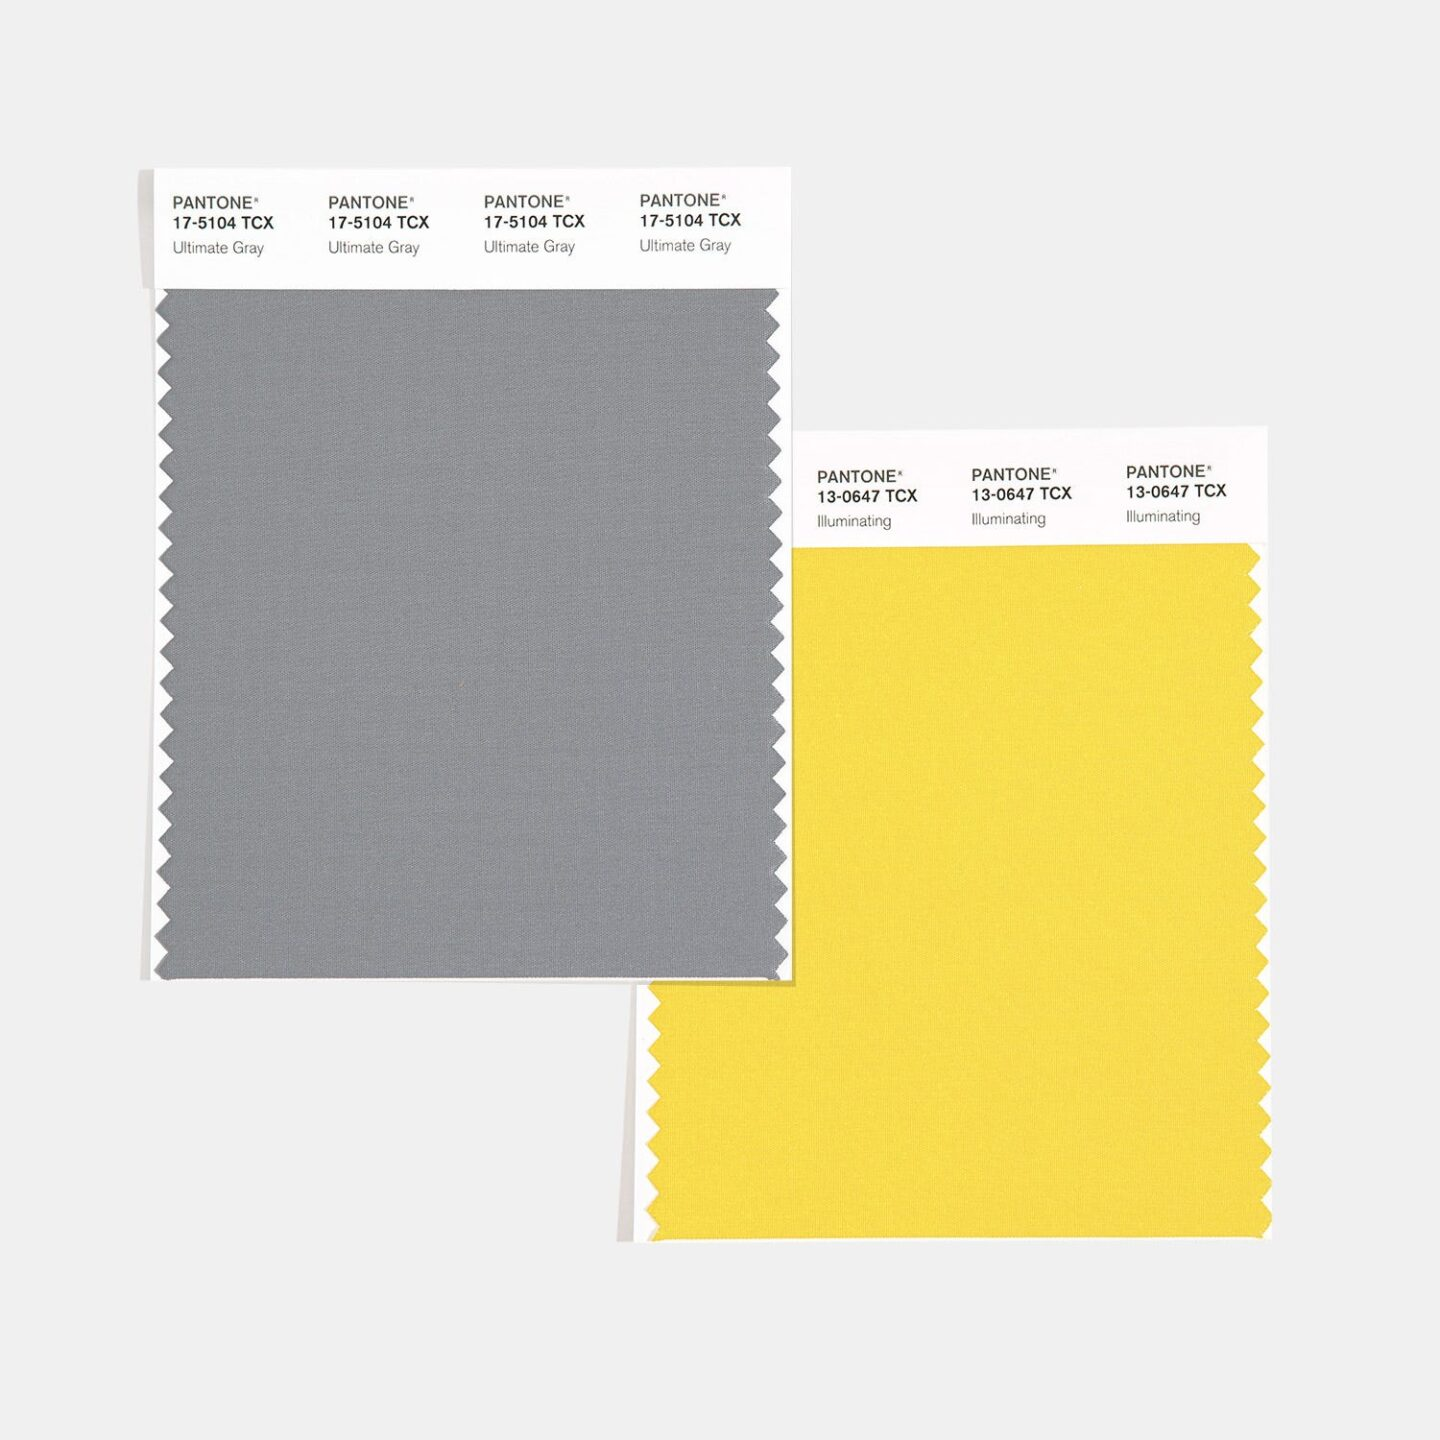 The combination of PANTONE 17-5104 Ultimate Gray + PANTONE 13-0647 Illuminating is aspirational and gives us hope. We need to feel that everything is going to get brighter – this is essential to the human spirit.